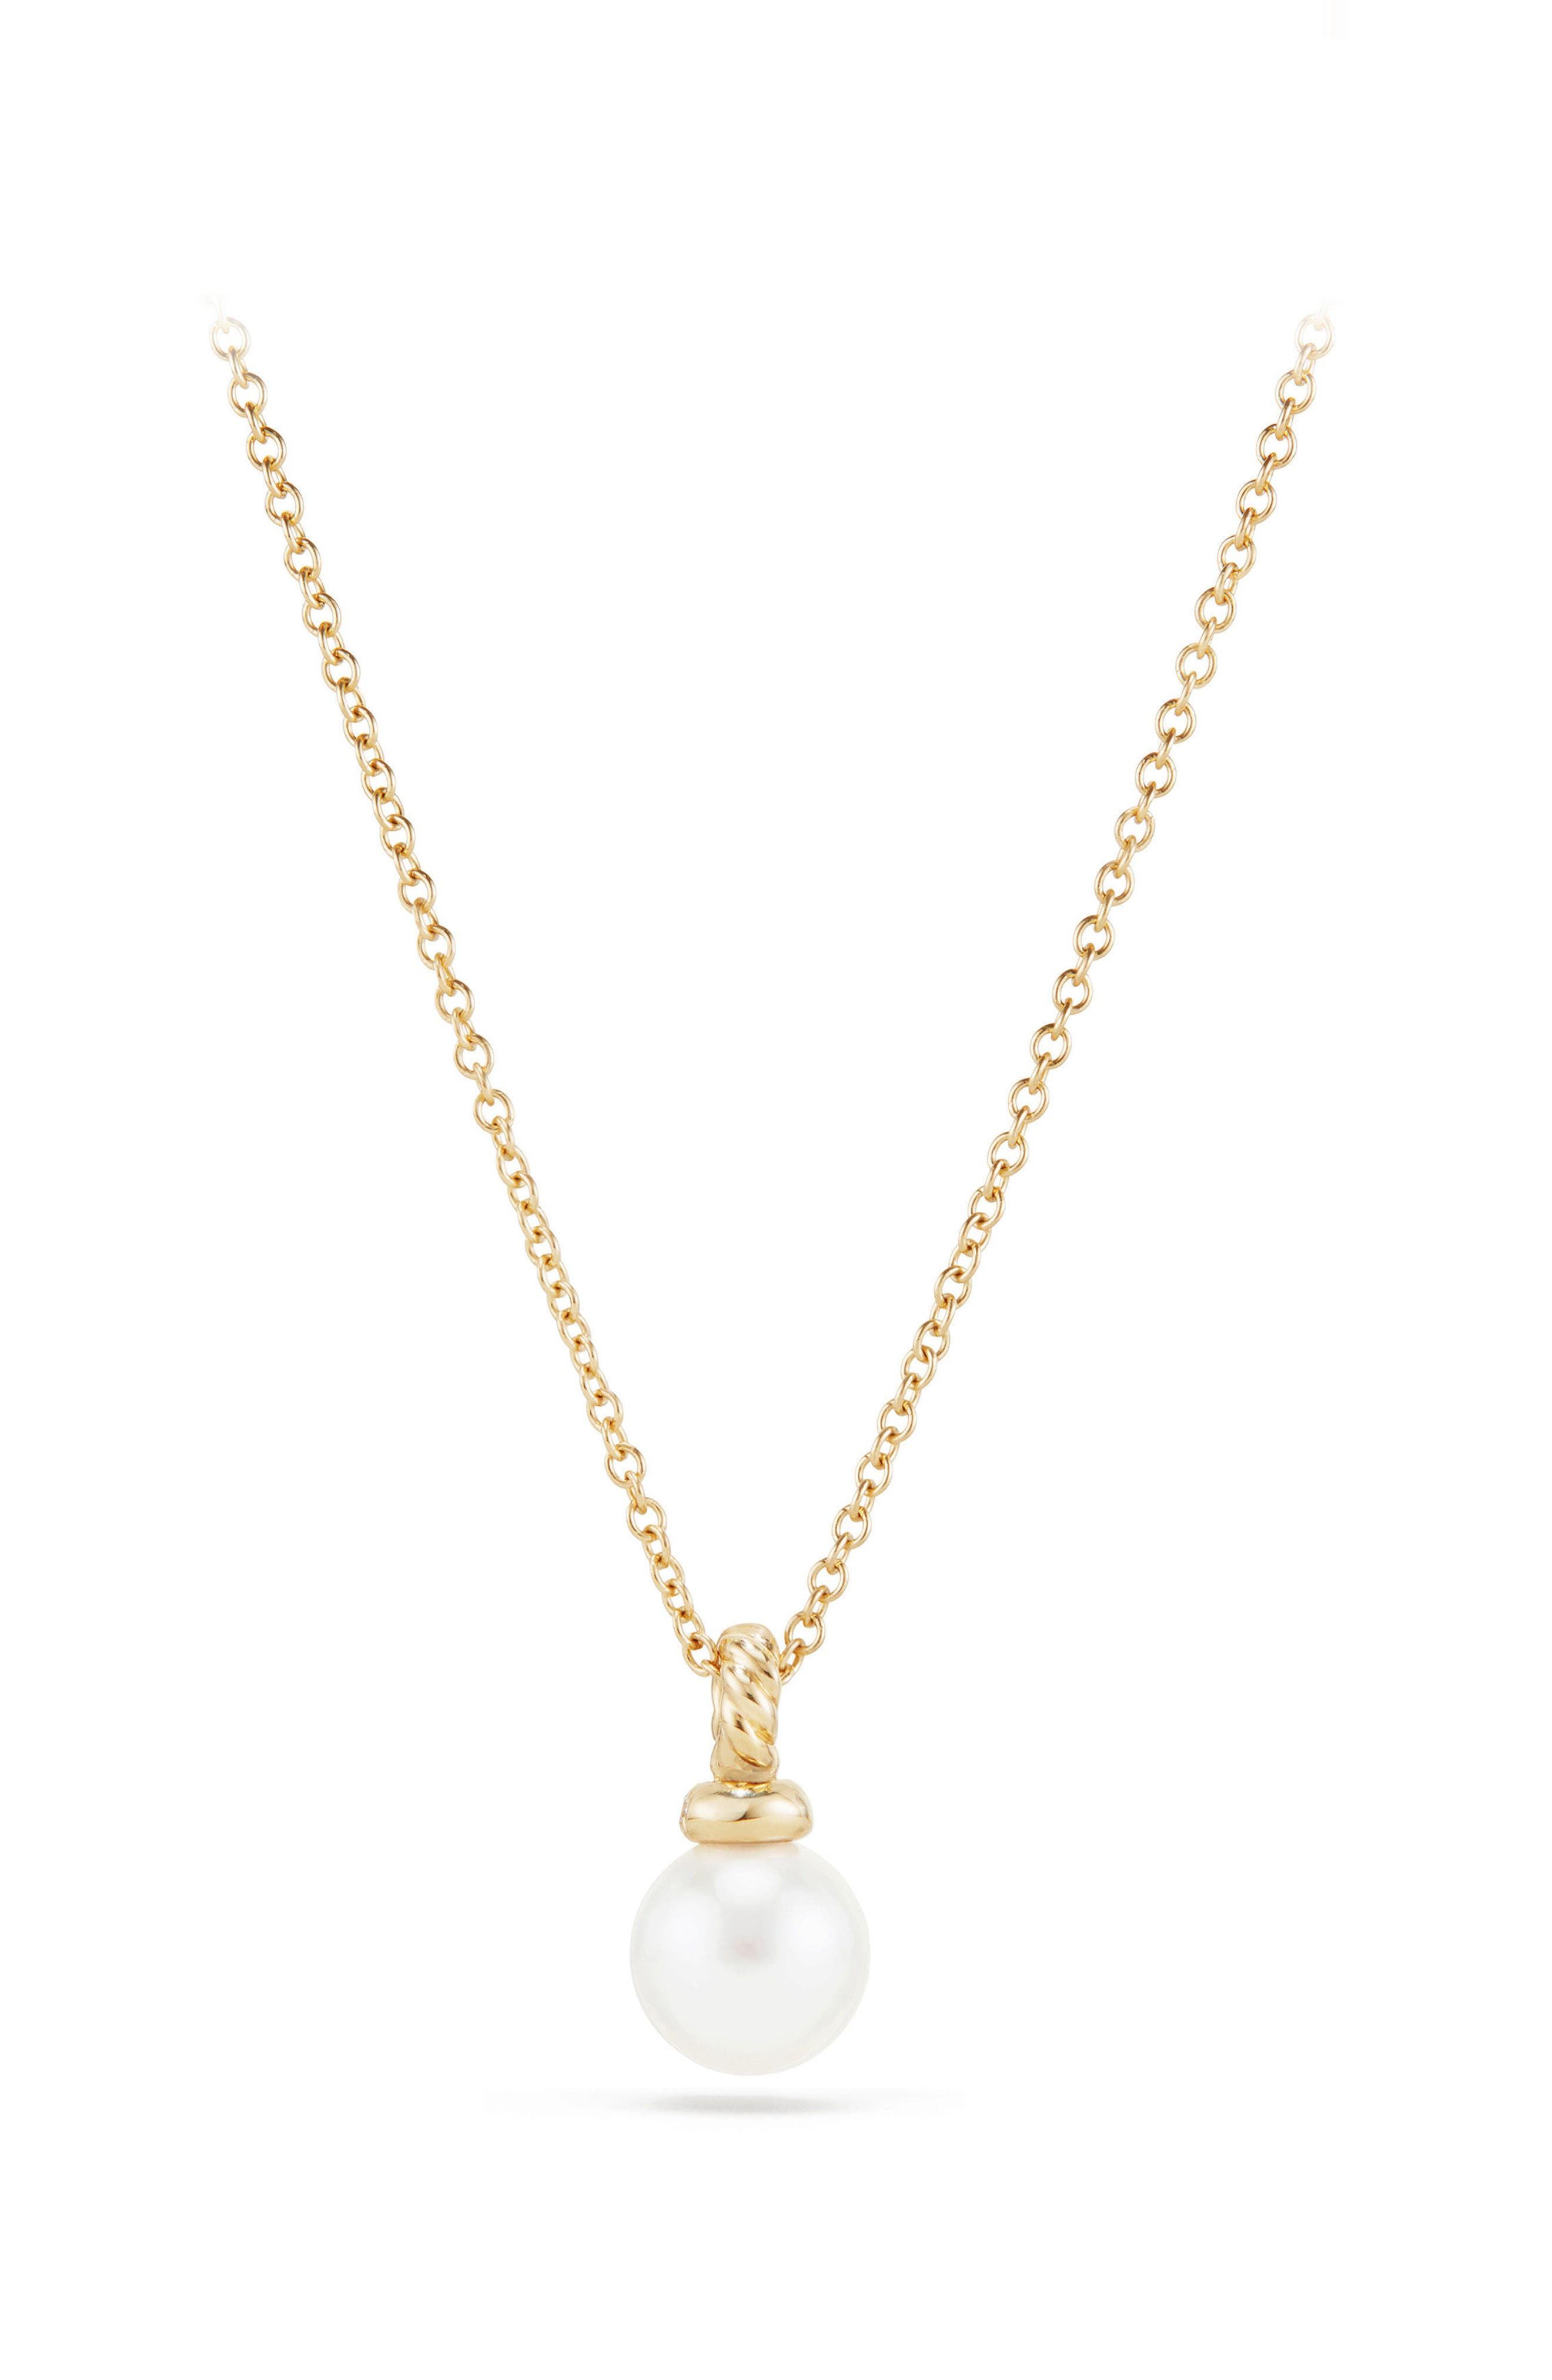 Solari Pendant Necklace with Pearl & Diamonds in 18K Gold,                             Alternate thumbnail 3, color,                             YELLOW GOLD/ DIAMOND/ PEARL